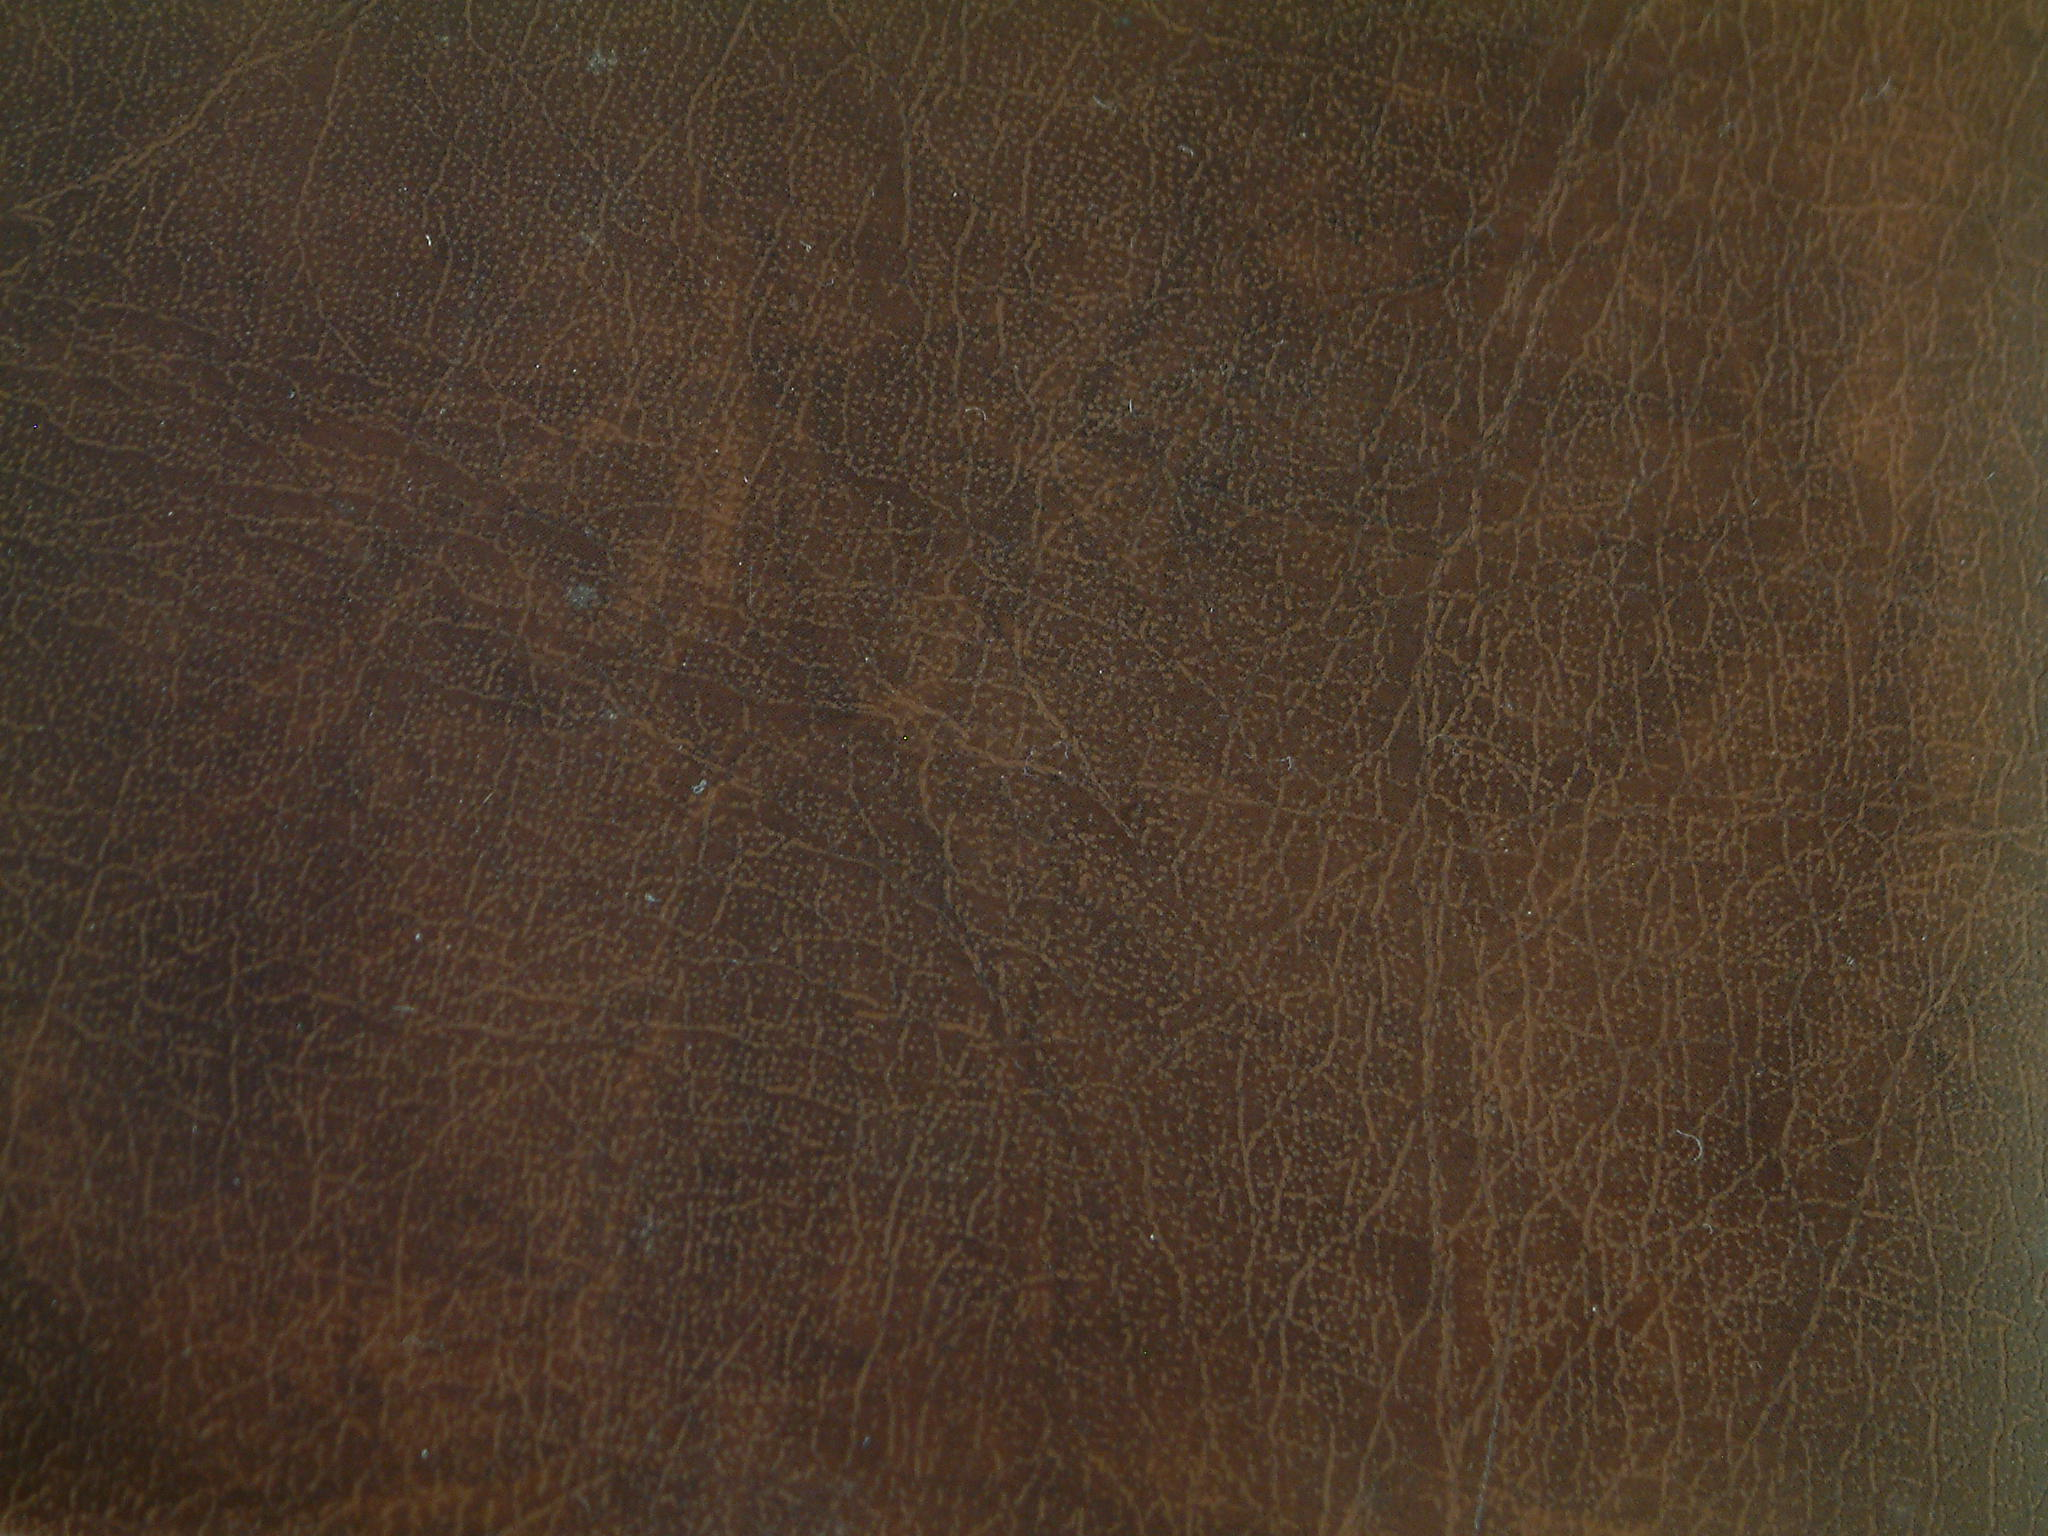 Leather Texture 2 by Riverd-Stock